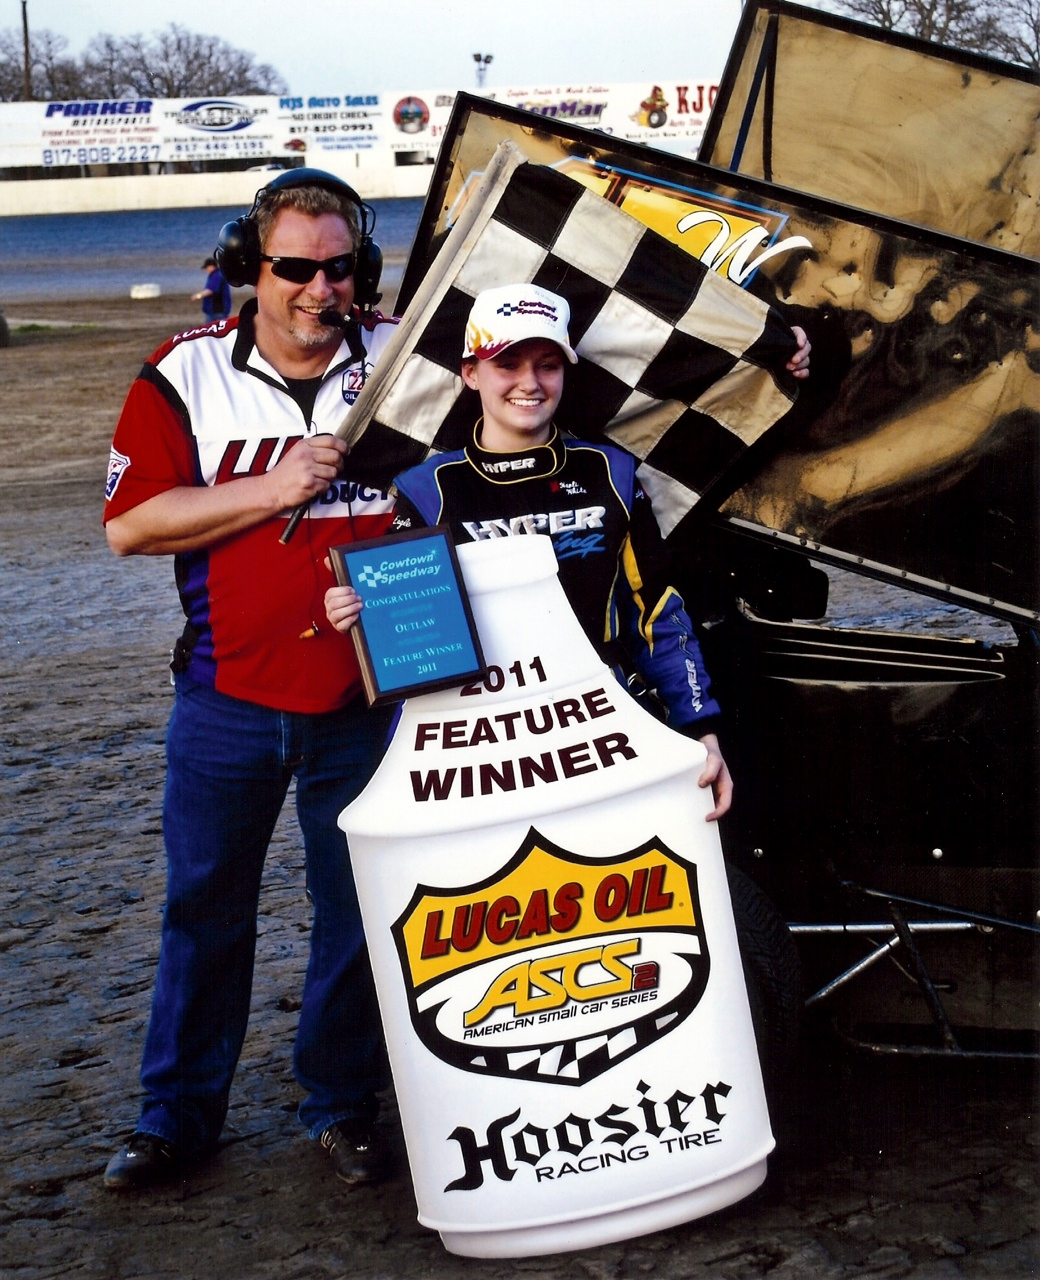 Though a Chili Bowl rookie, White is familiar with the bullring Dirt oval,  having made the A-Main in two different classes at the Tulsa Shootout.